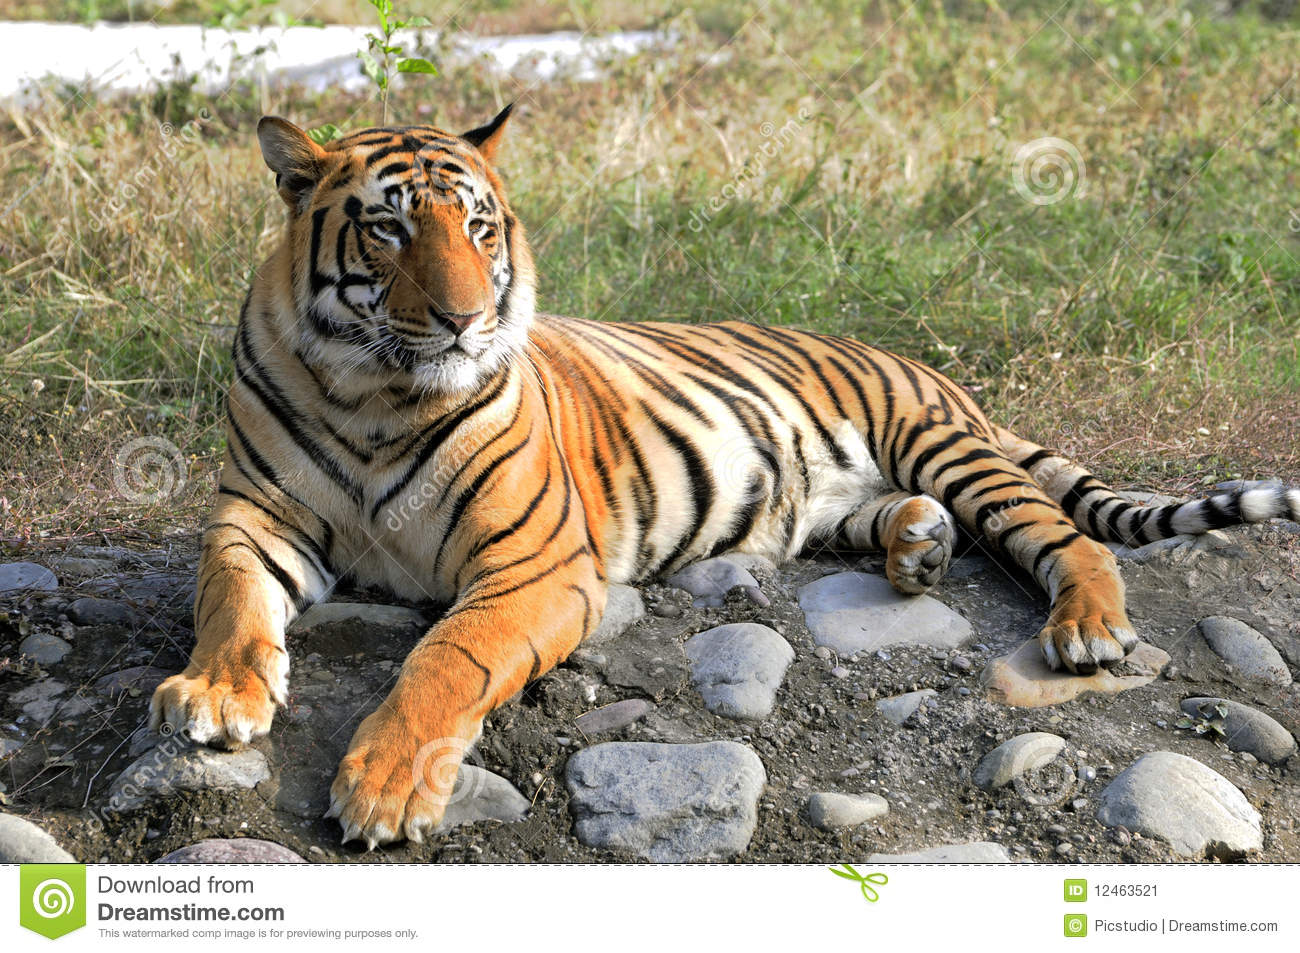 Here is your essay on project tiger